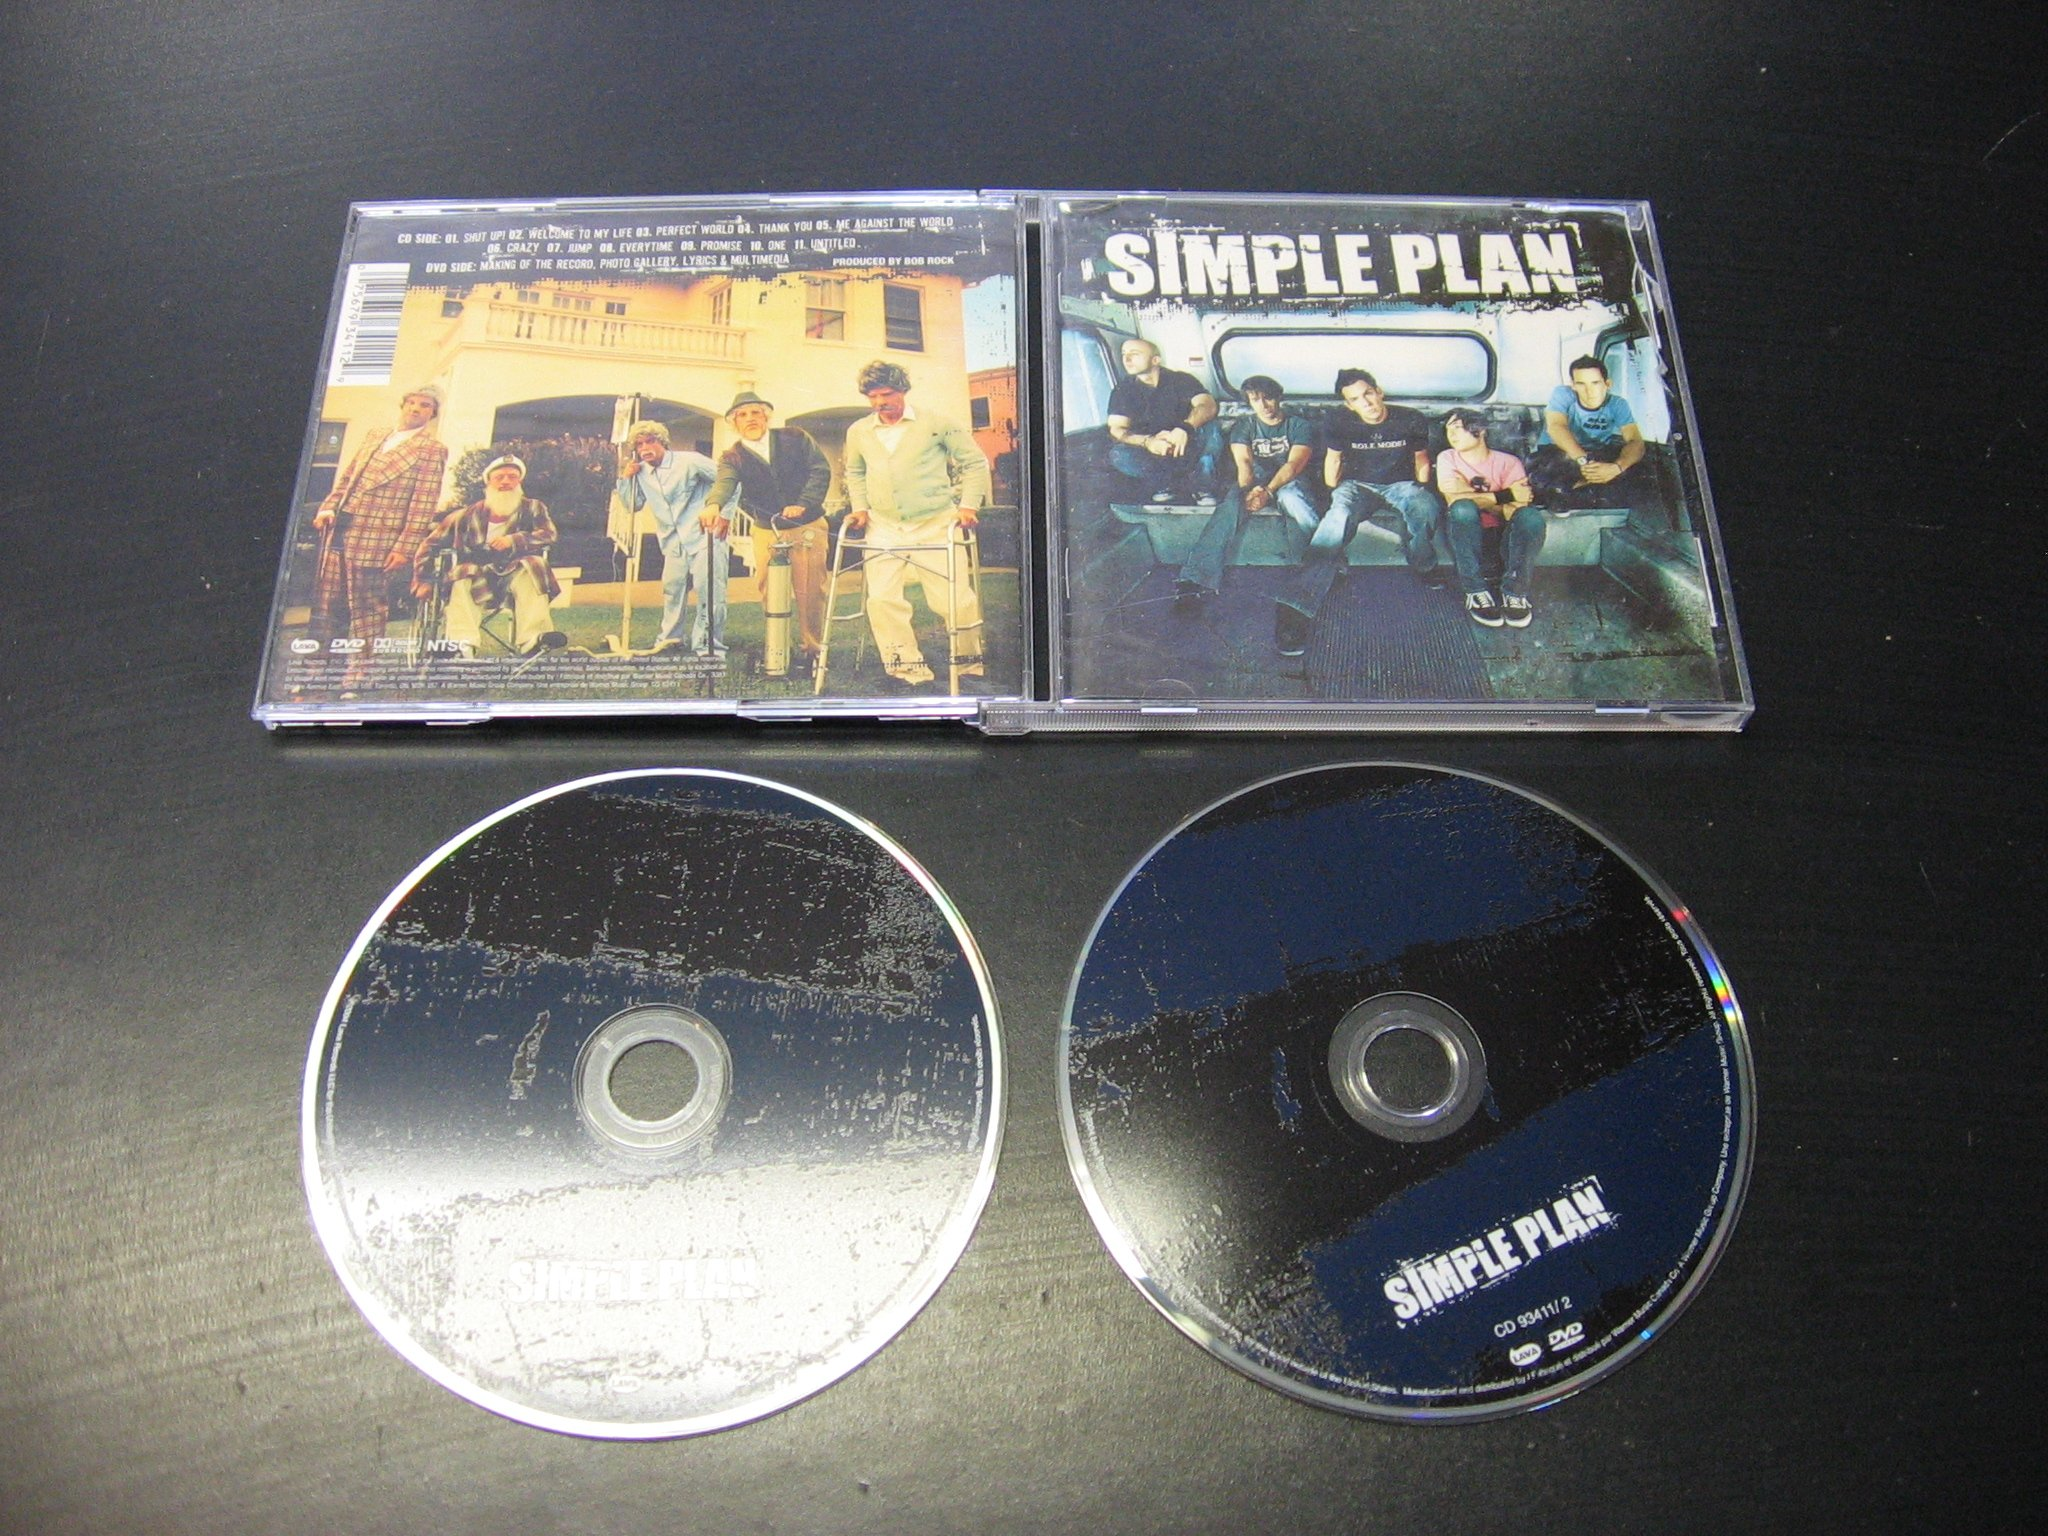 SIMPLE PLAN ___ 2 CD ___ Opole 0287 ```````````` Opole